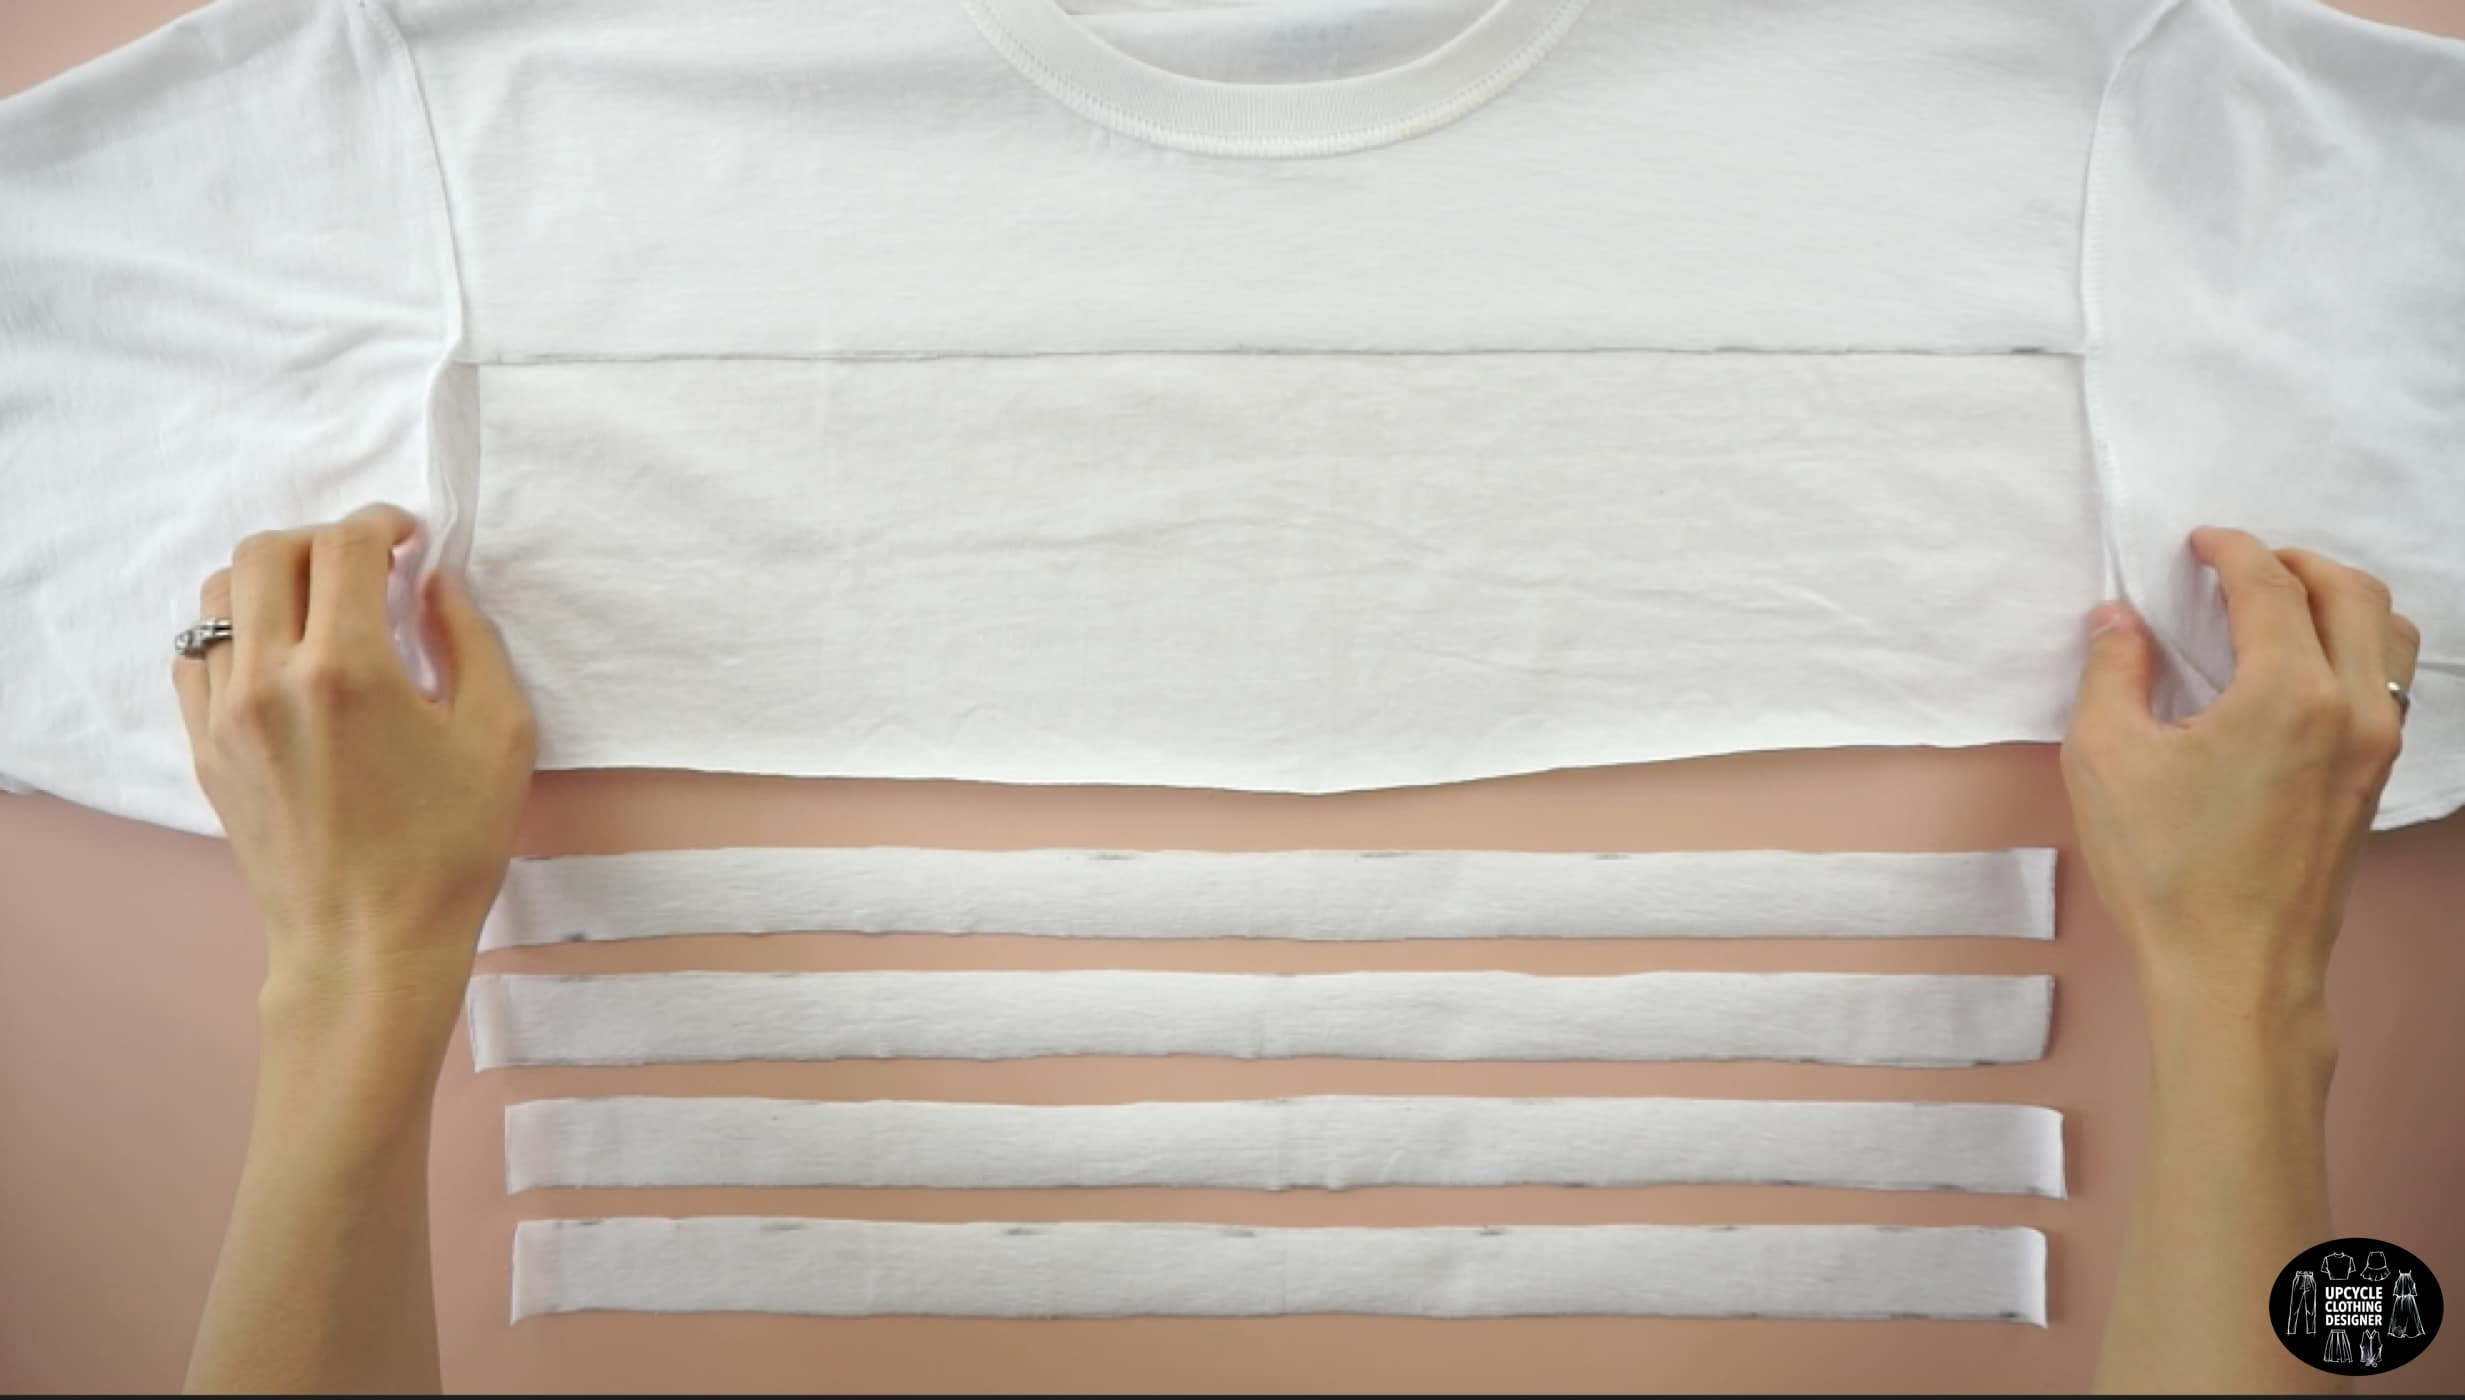 Cut four straps on the back of the original tee to make drawstrings